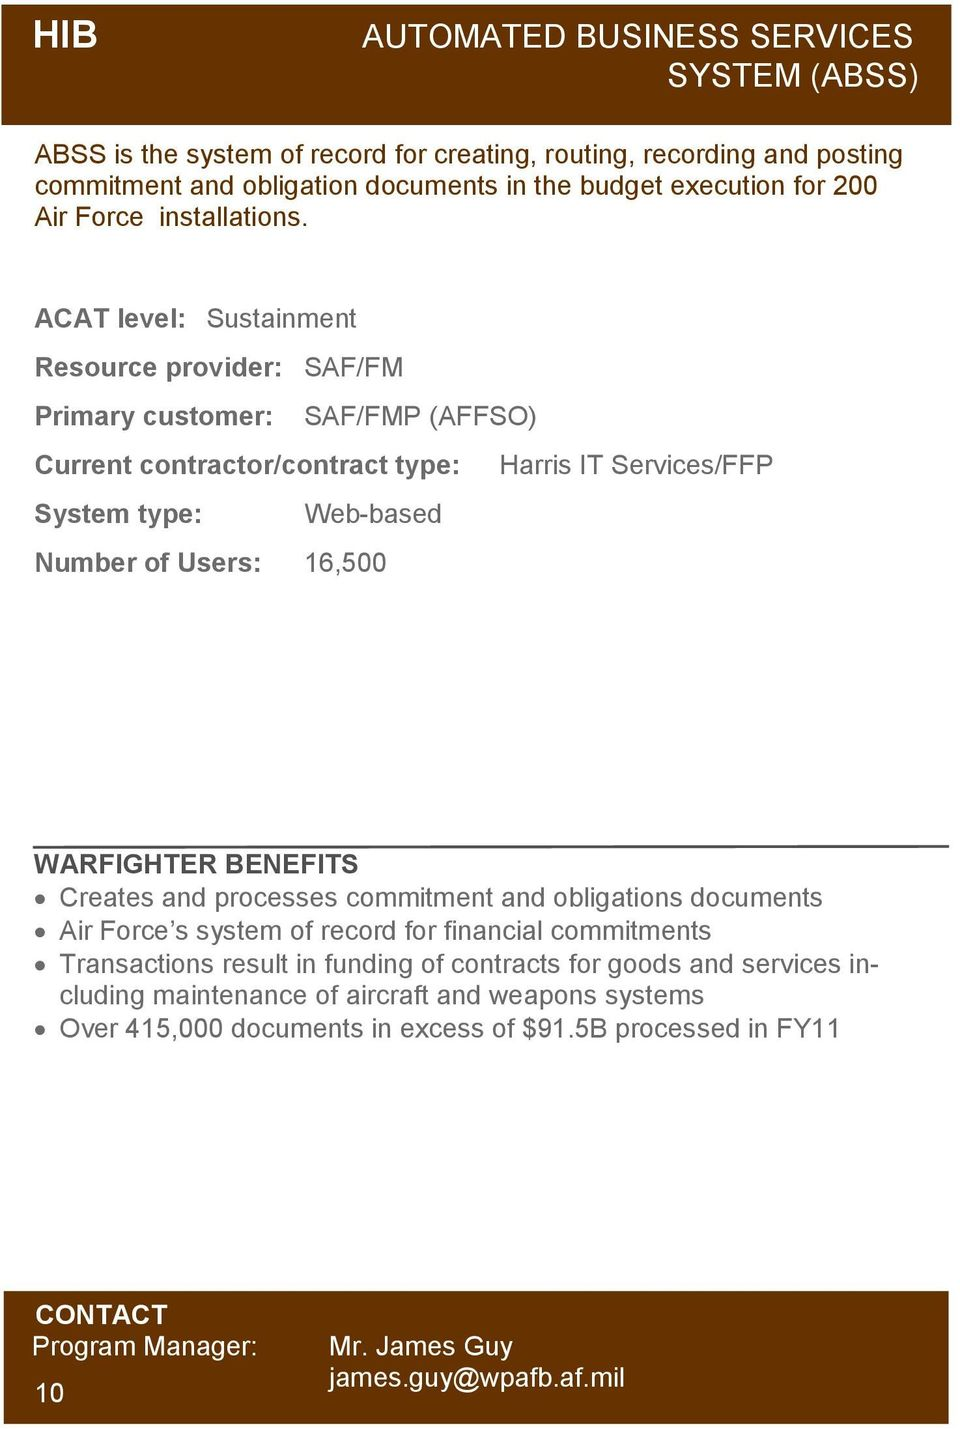 Resource provider: SAF/FM Primary customer: SAF/FMP (AFFSO) Current contractor/contract type: Harris IT Services/FFP System type: Web-based Number of Users: 16,500 Creates and